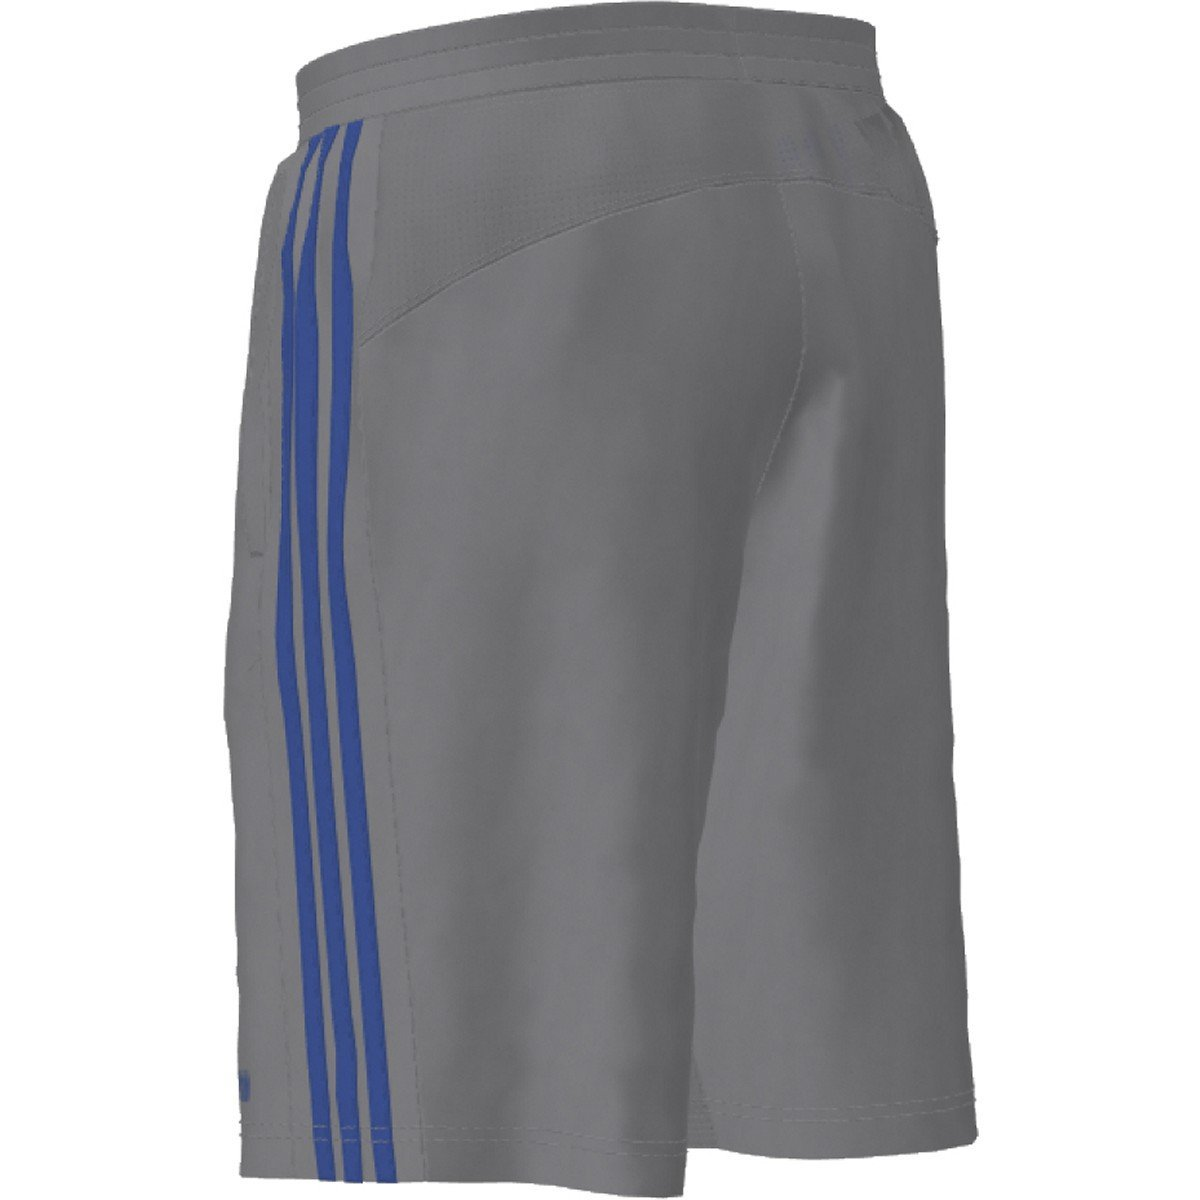 adidas Men's Design 2 Move Climacool 3 Stripes Shorts | GL1955 Shorts Adidas adult Small Grey Three F17/Glory Blue